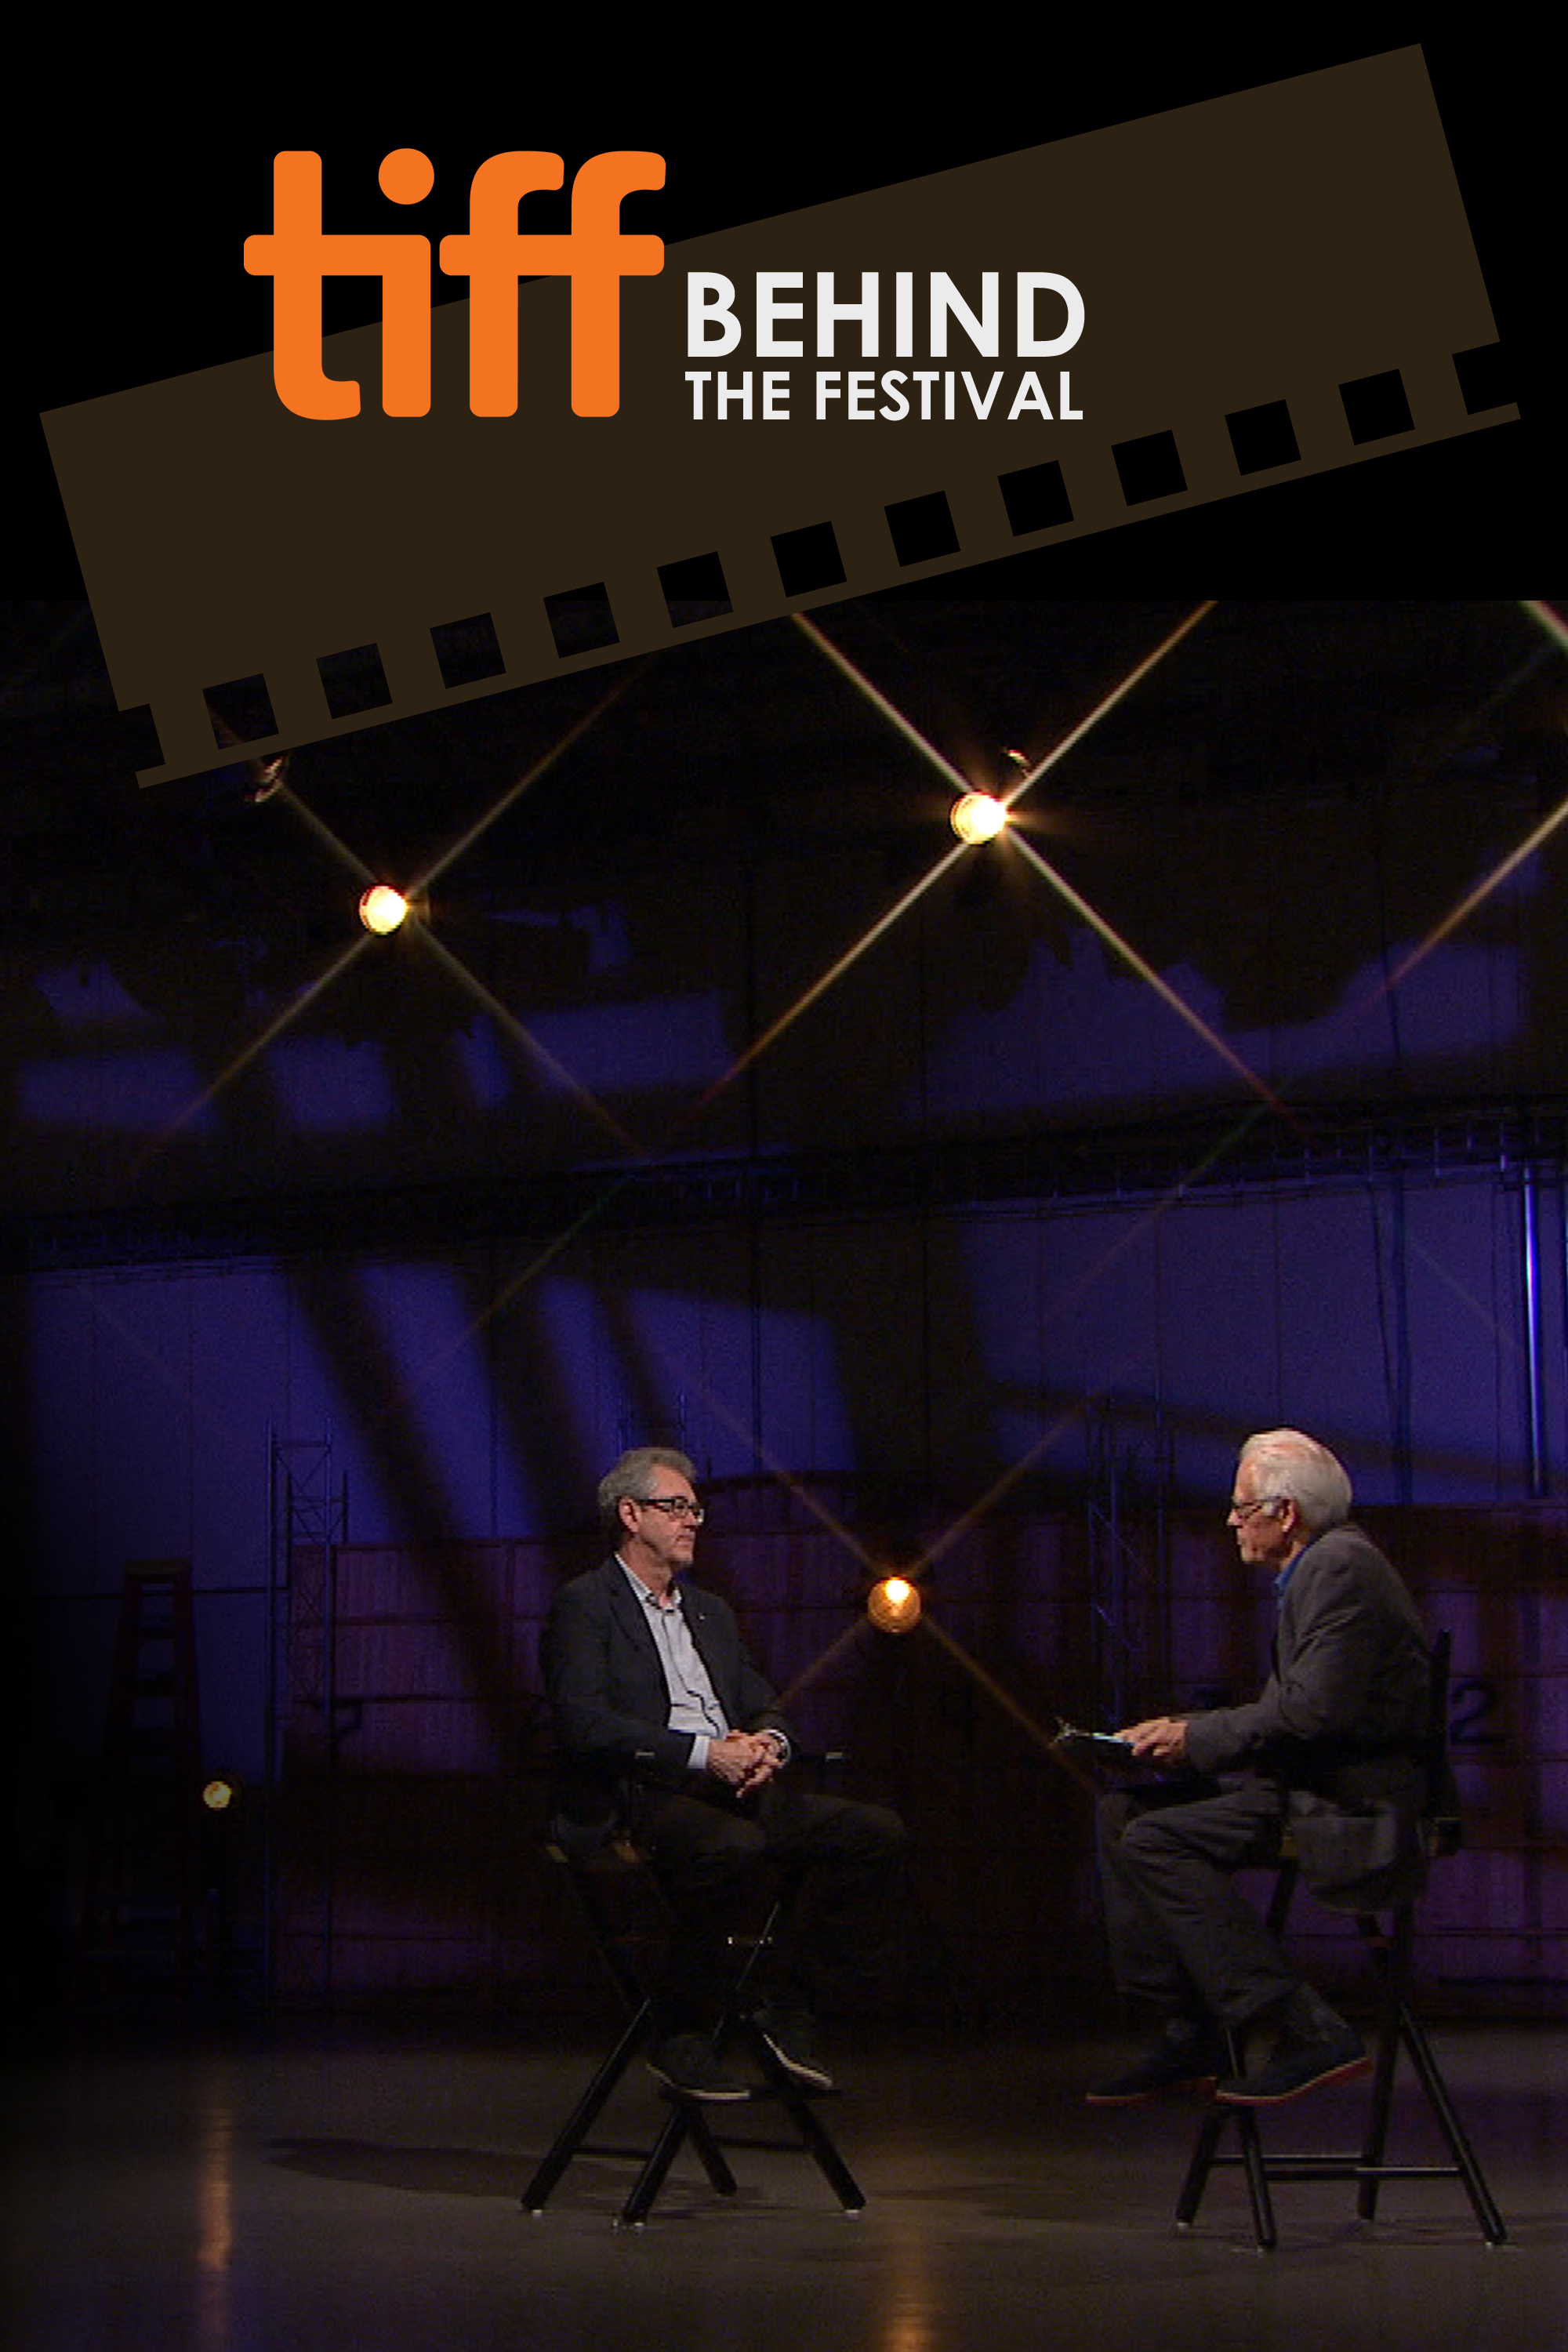 TIFF Behind the Festival | Premiered Nov. 26